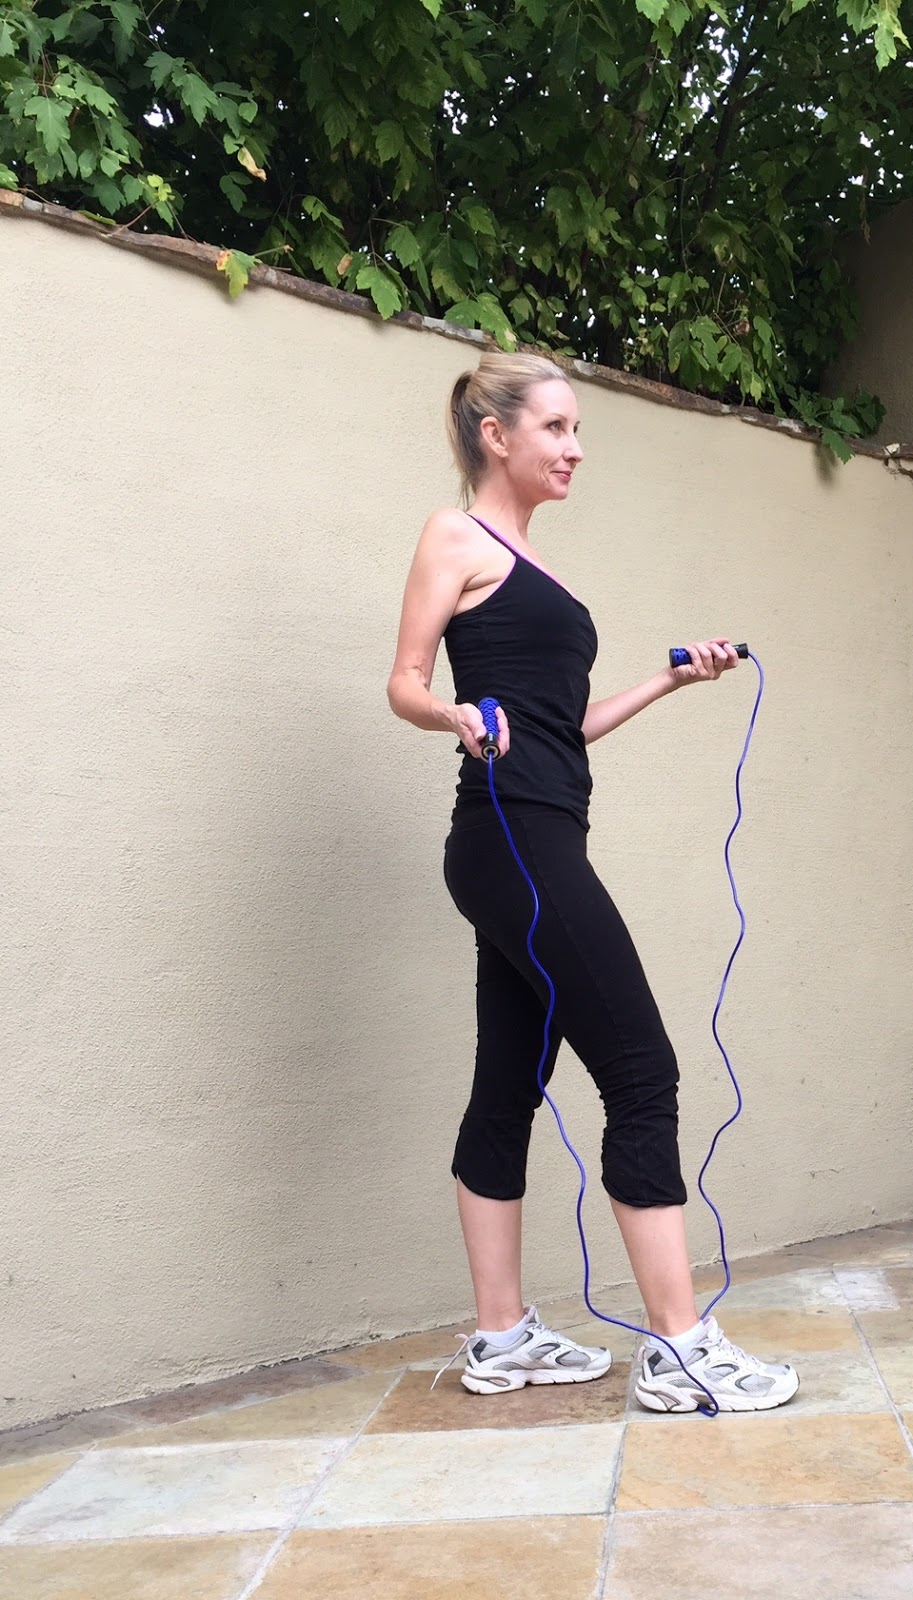 Old fashioned jump rope rhymes 58